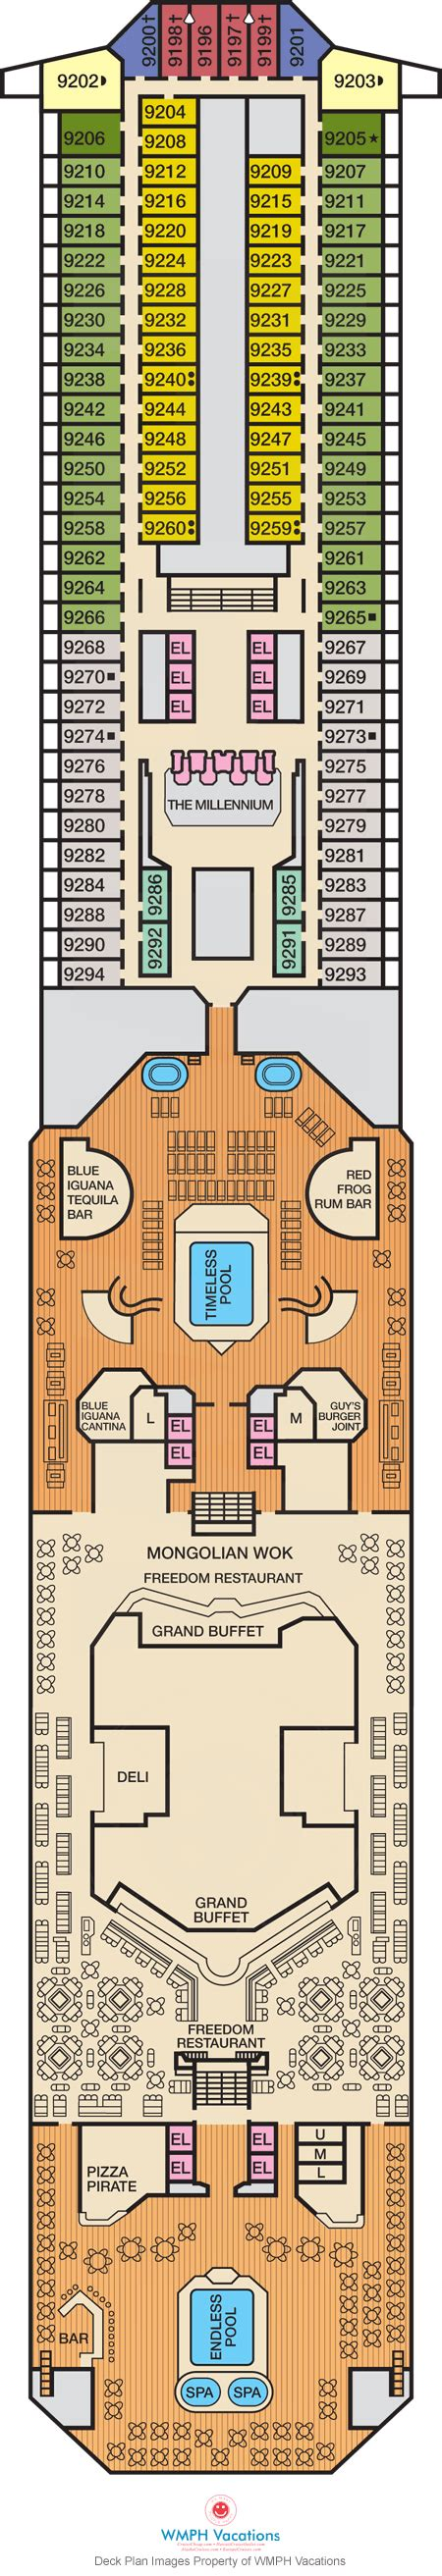 carnival freedom floor plan carnival freedom deck plans lido deck what s on lido